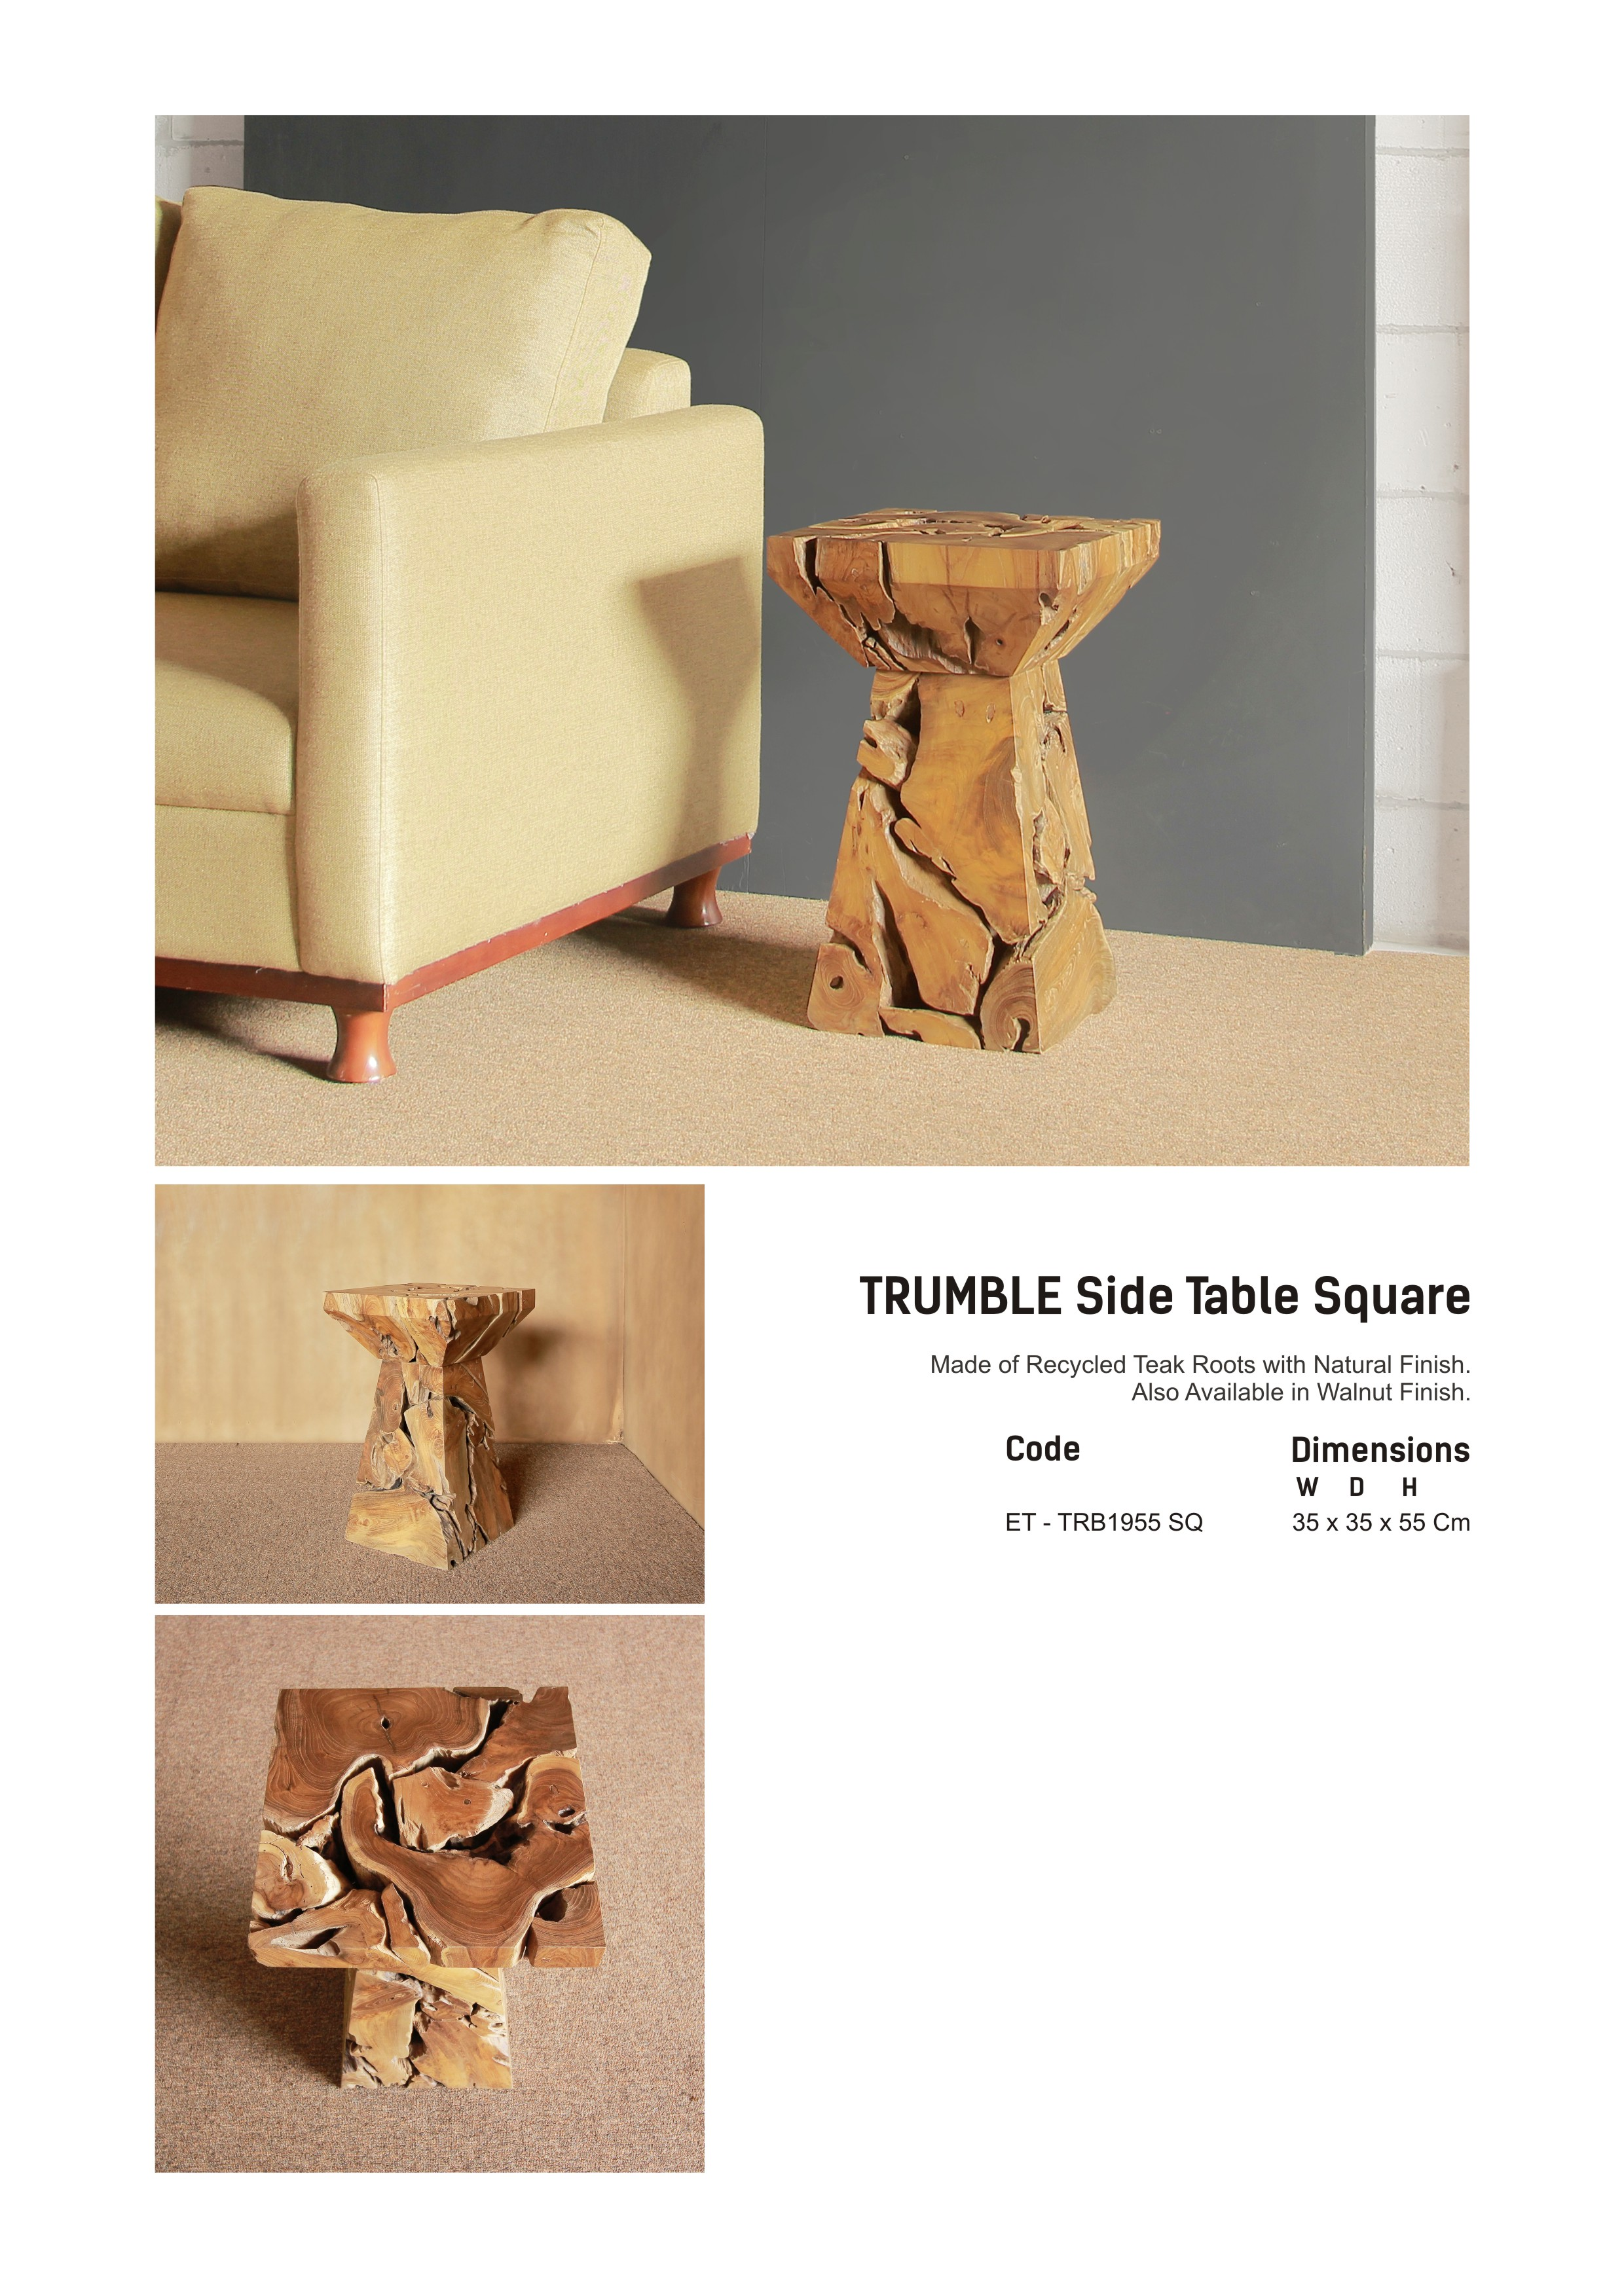 19. TRUMBLE Side Table Square